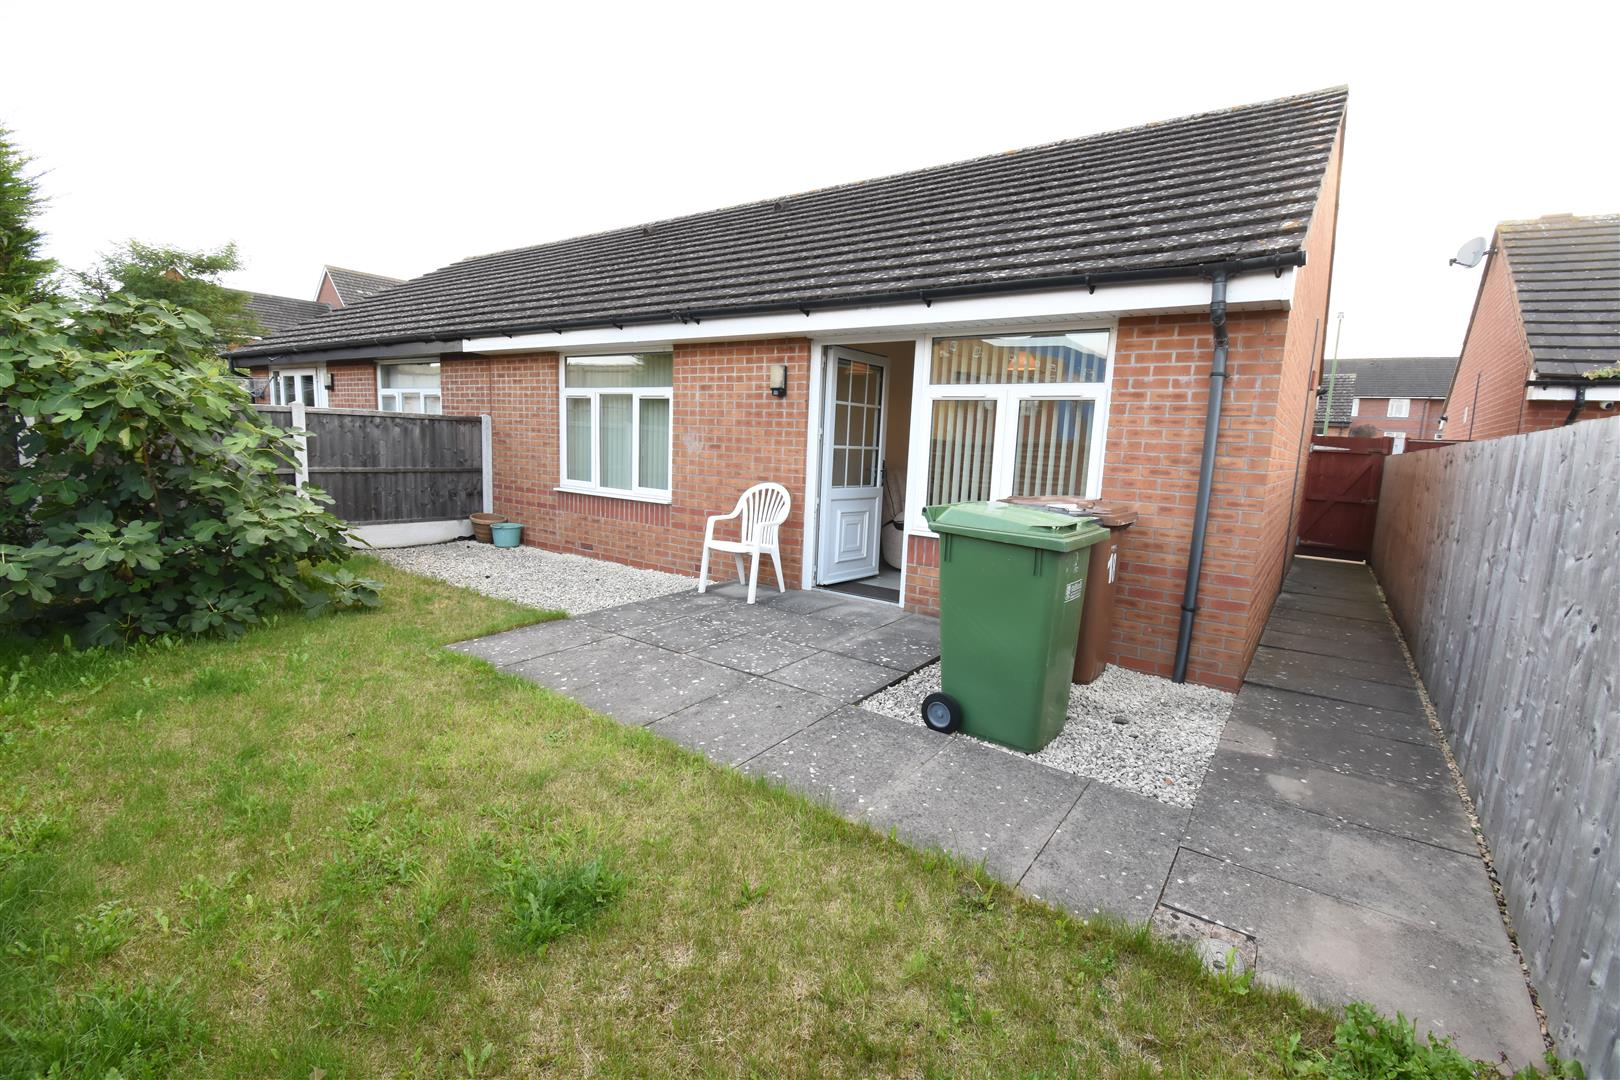 2 bed bungalow for sale in Wyegate Close, Smiths Wood, Birmingham - Property Image 1